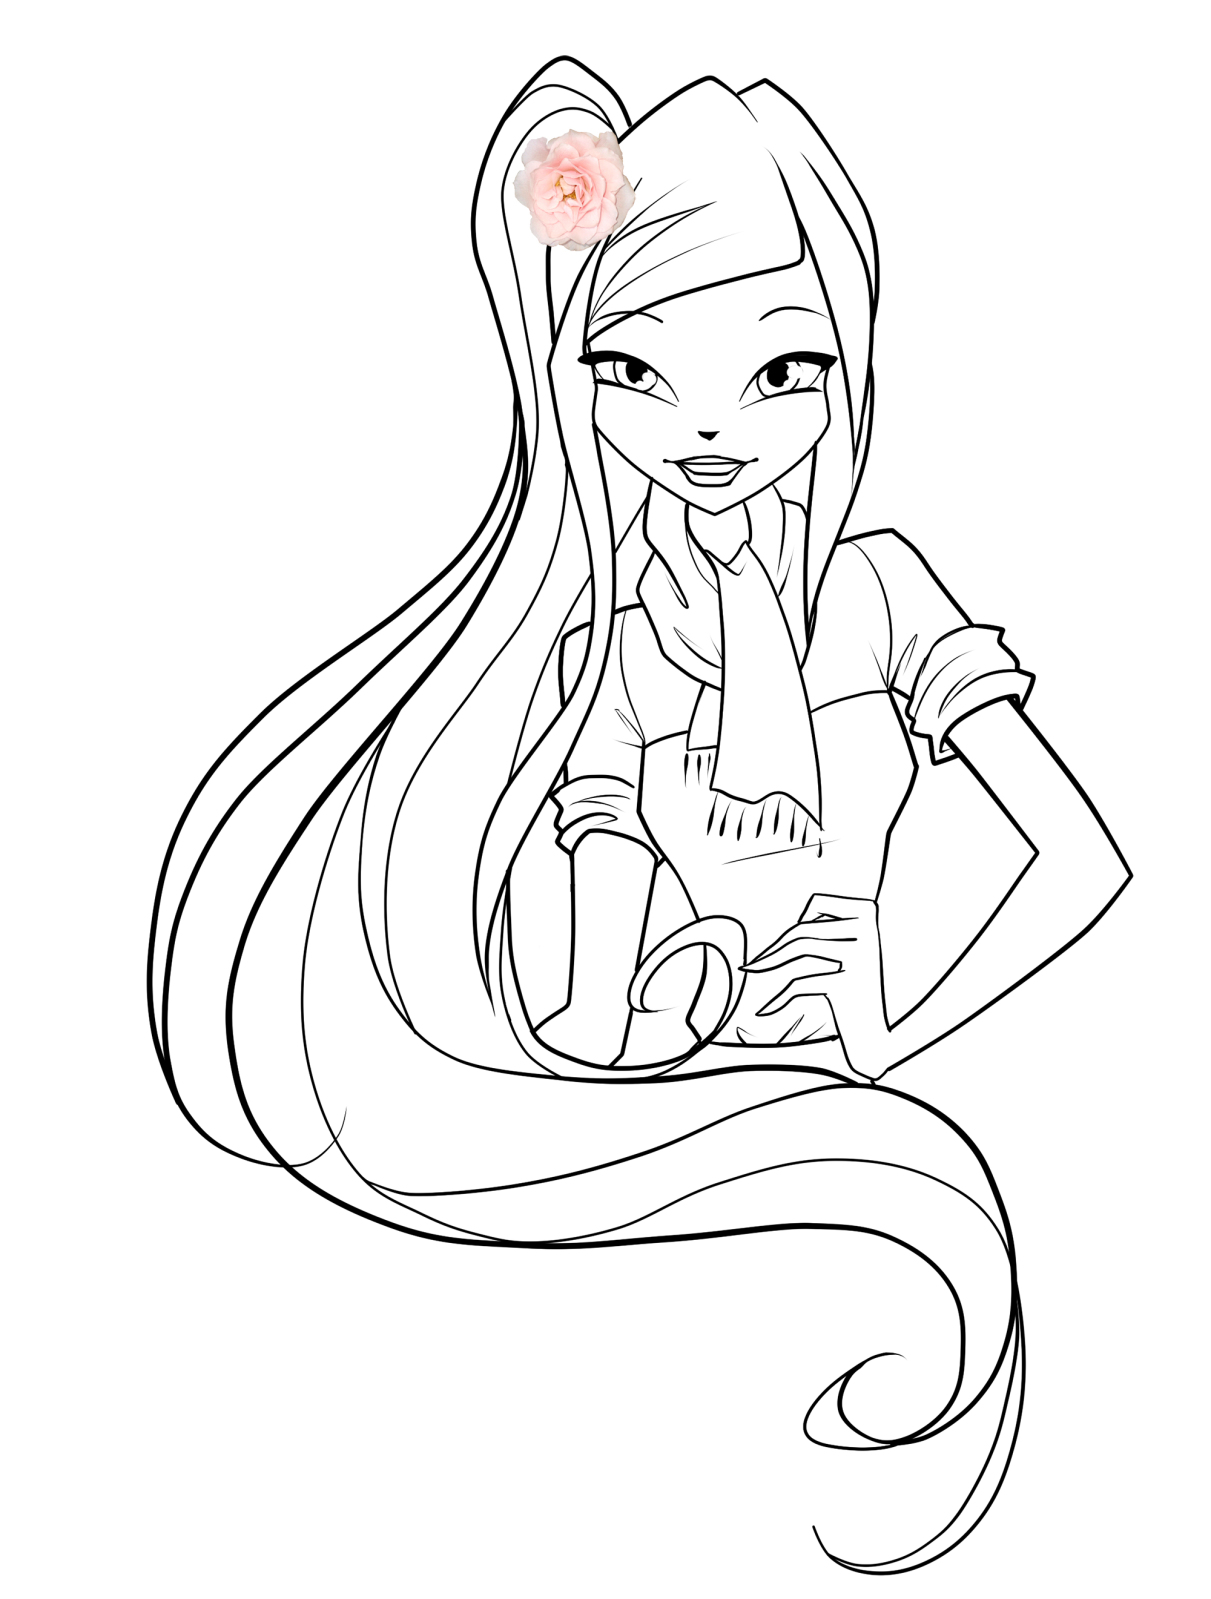 Free Season 4 Winx Coloring Pages